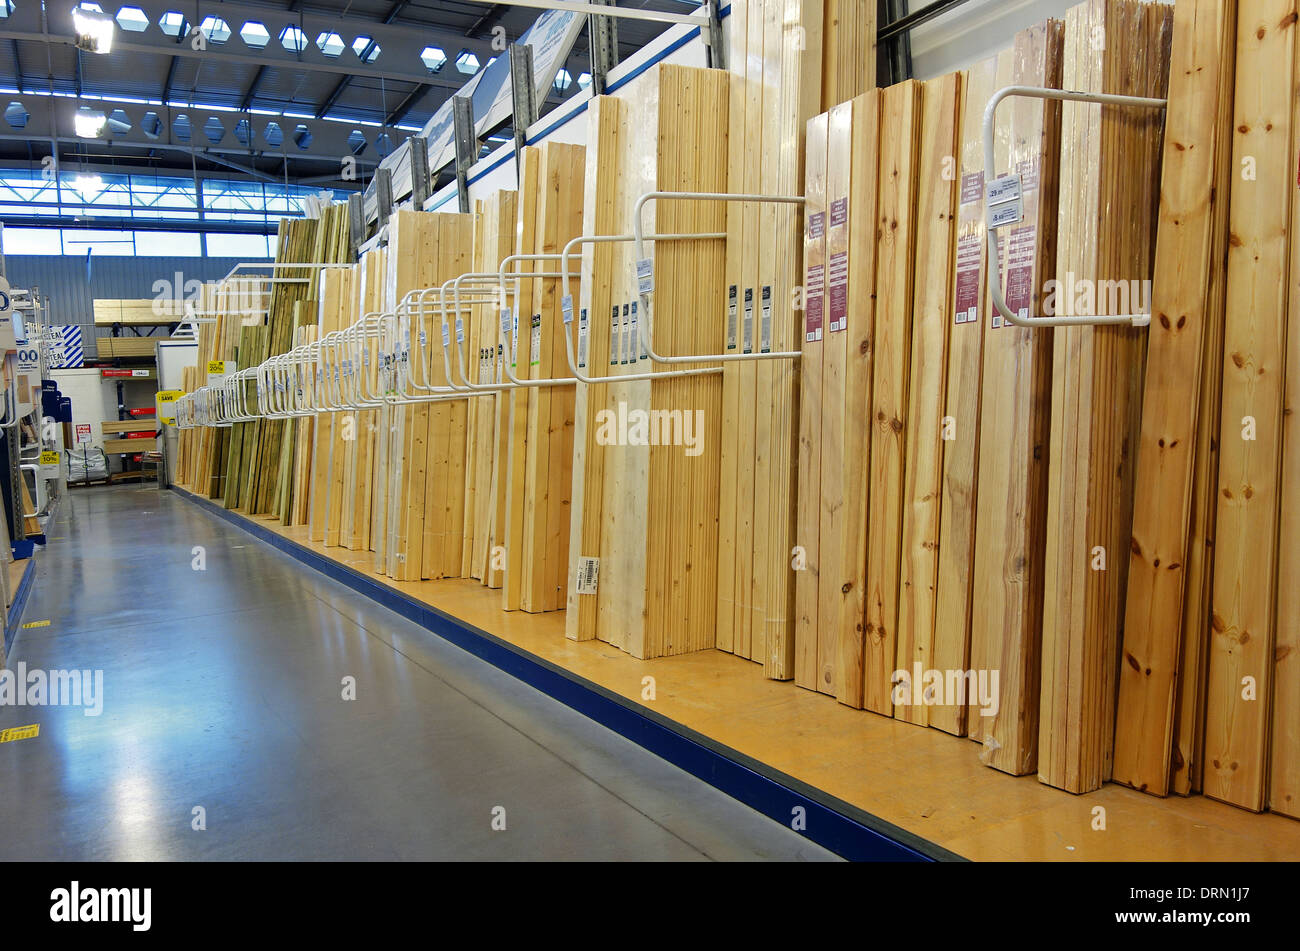 Do it yourself store stock photos do it yourself store stock the timber section in a diy store stock image solutioingenieria Gallery